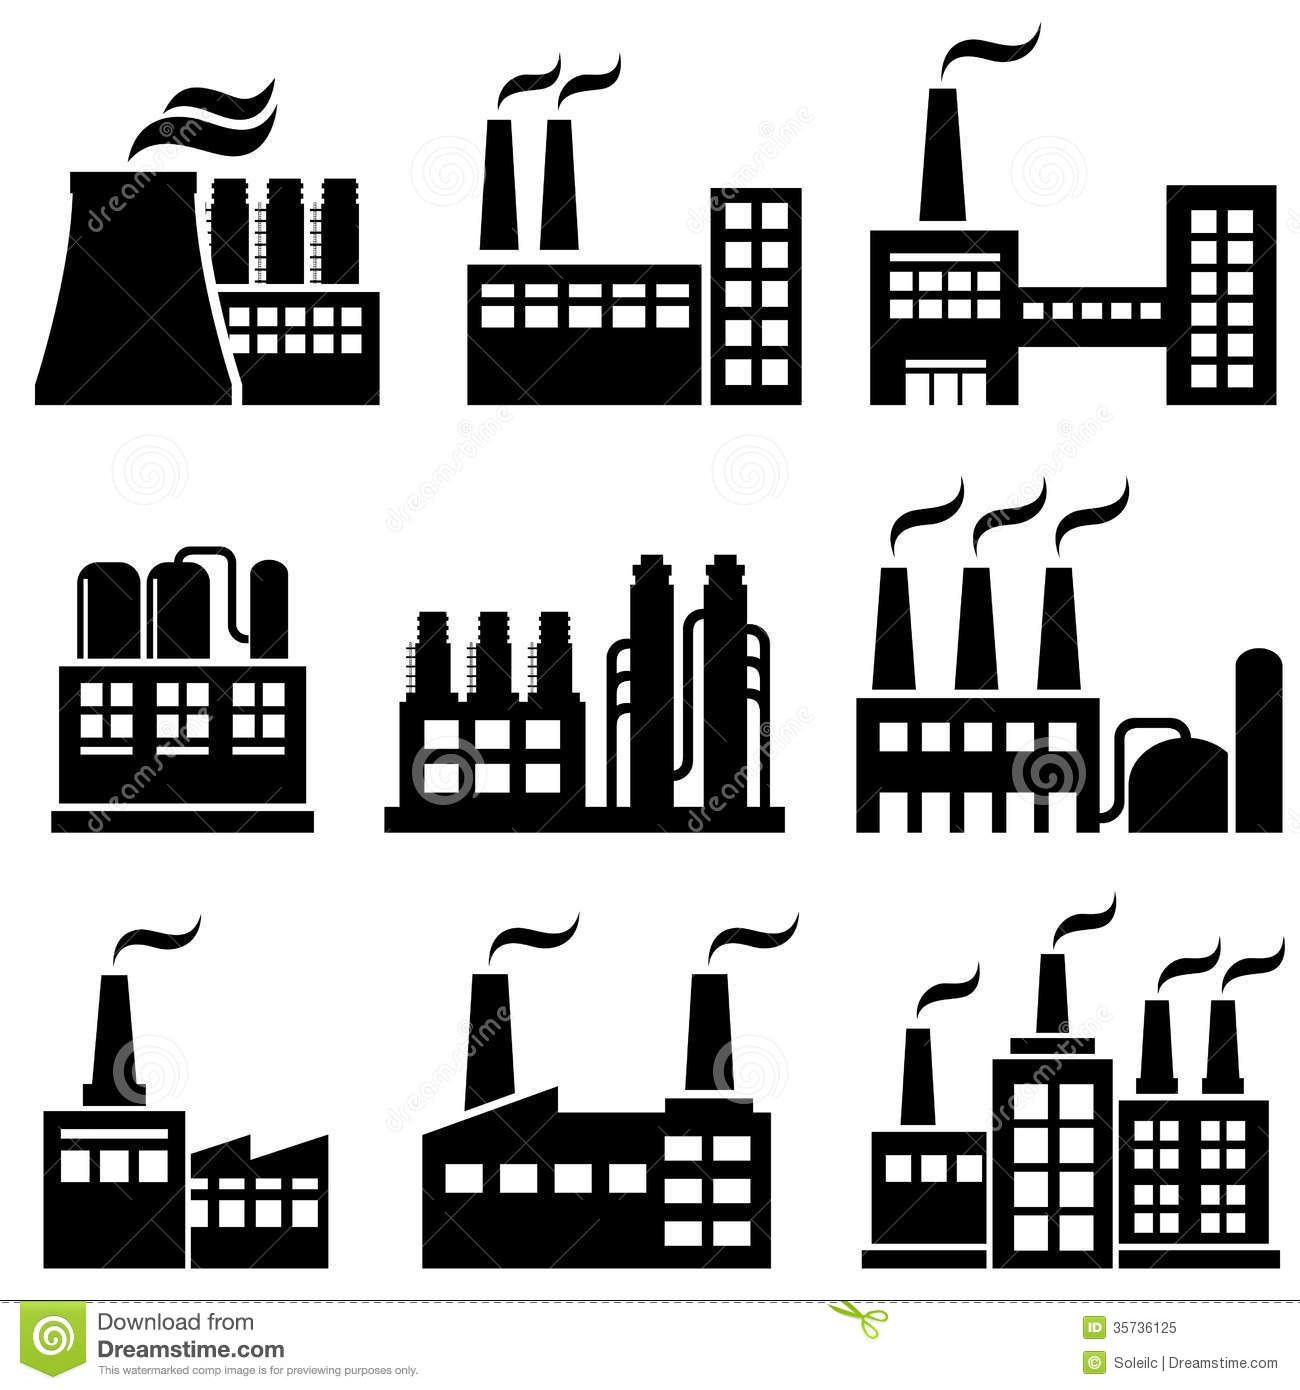 Industrial clipart #10, Download drawings